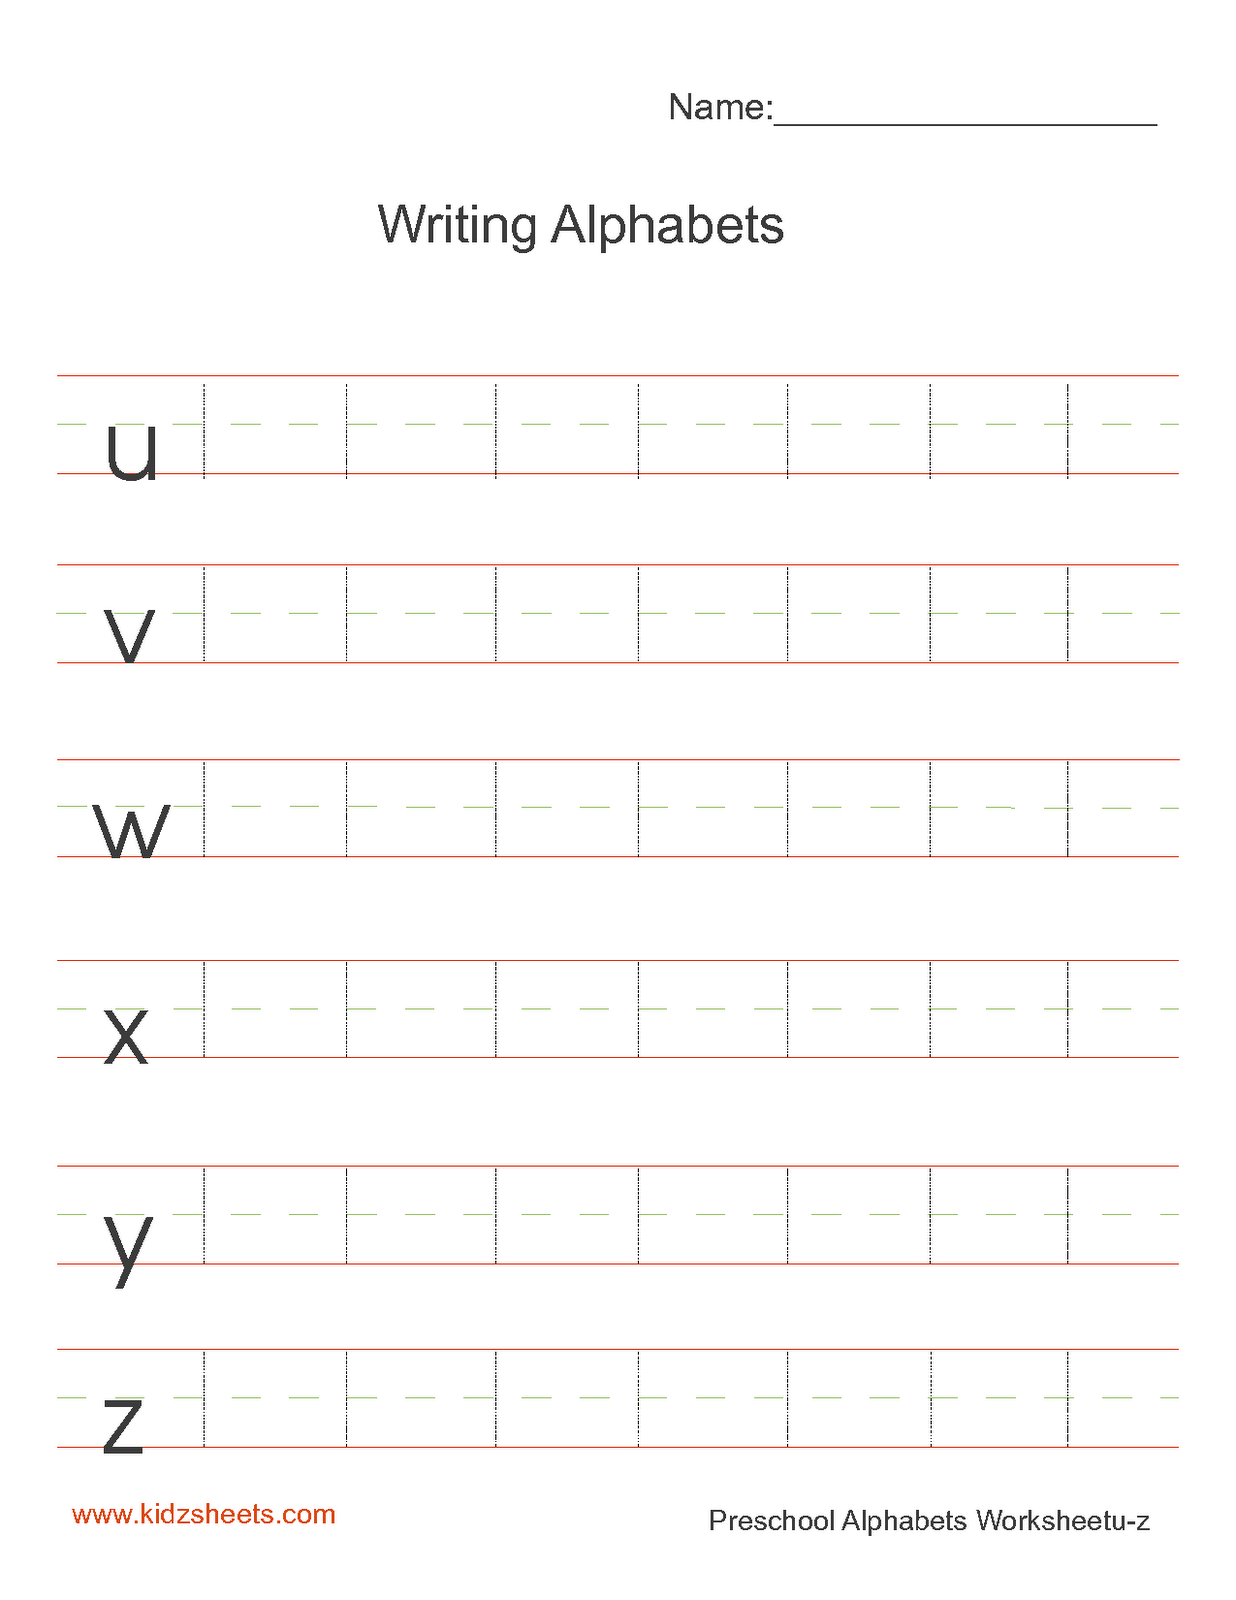 Preschool Writing Patterns, Writing Patterns Worksheets